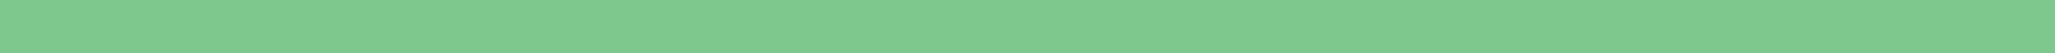 light green divider _ehl-1